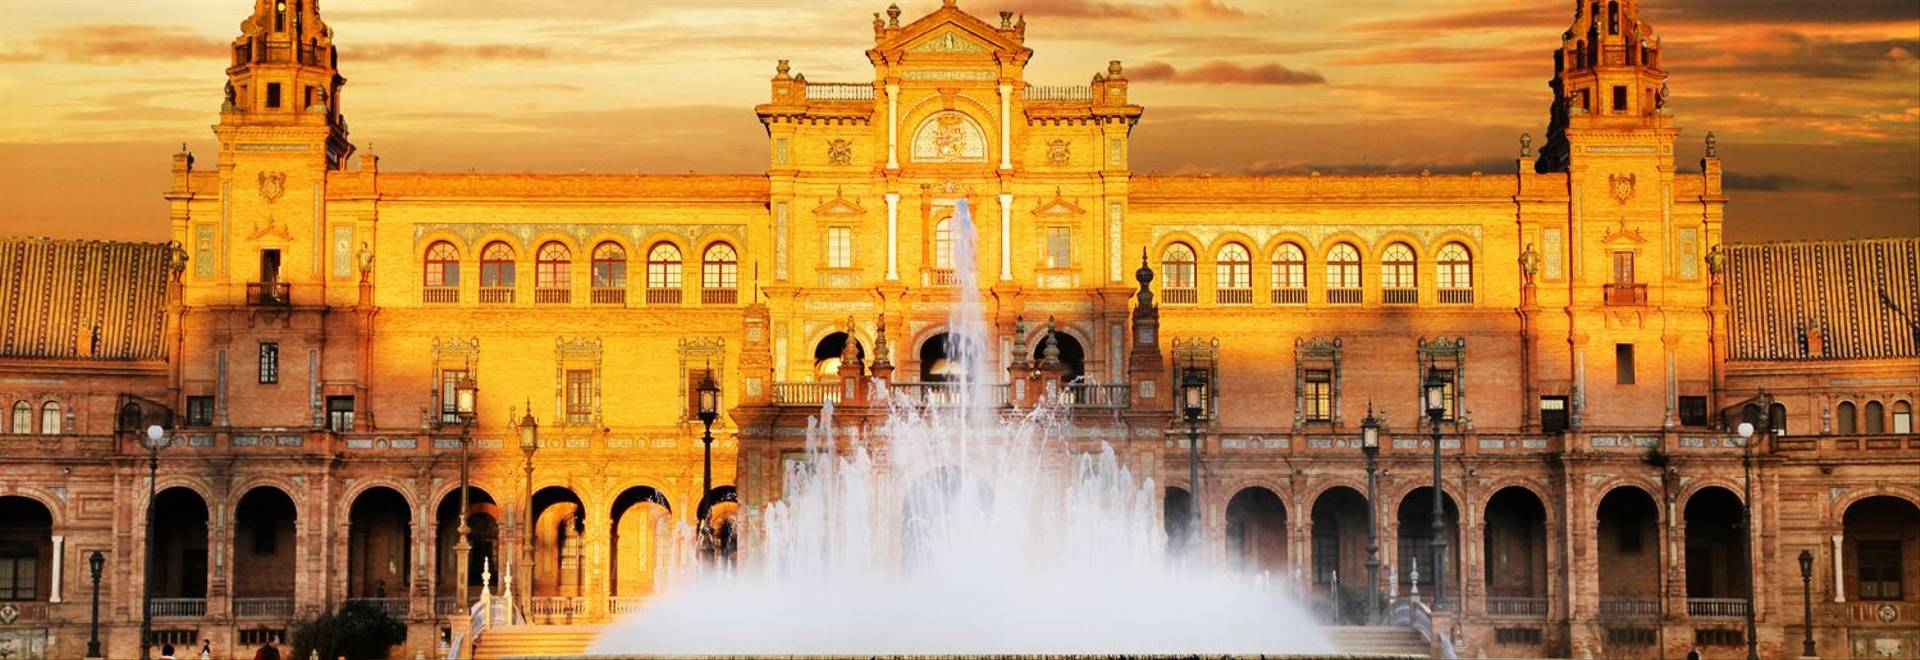 Plaza de Espana on sunset.